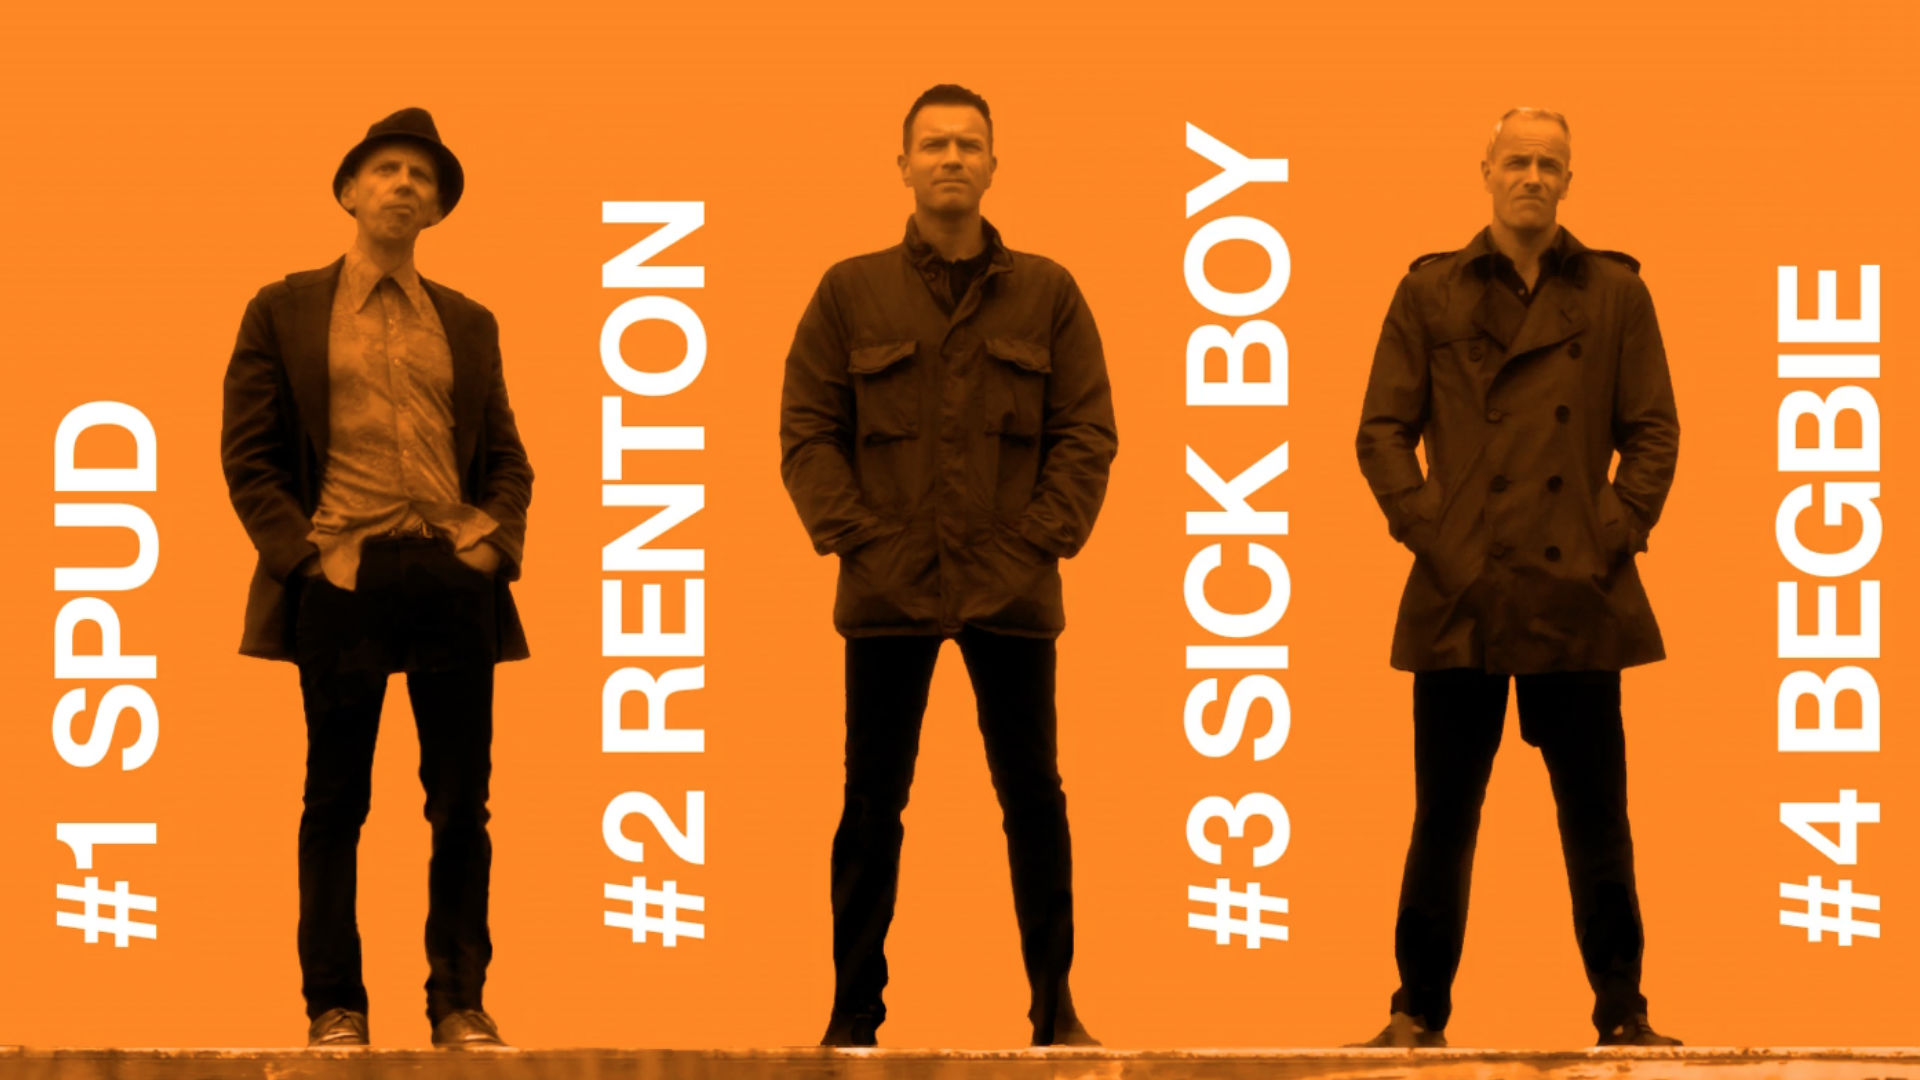 T2: Trainspotting 2 trailer